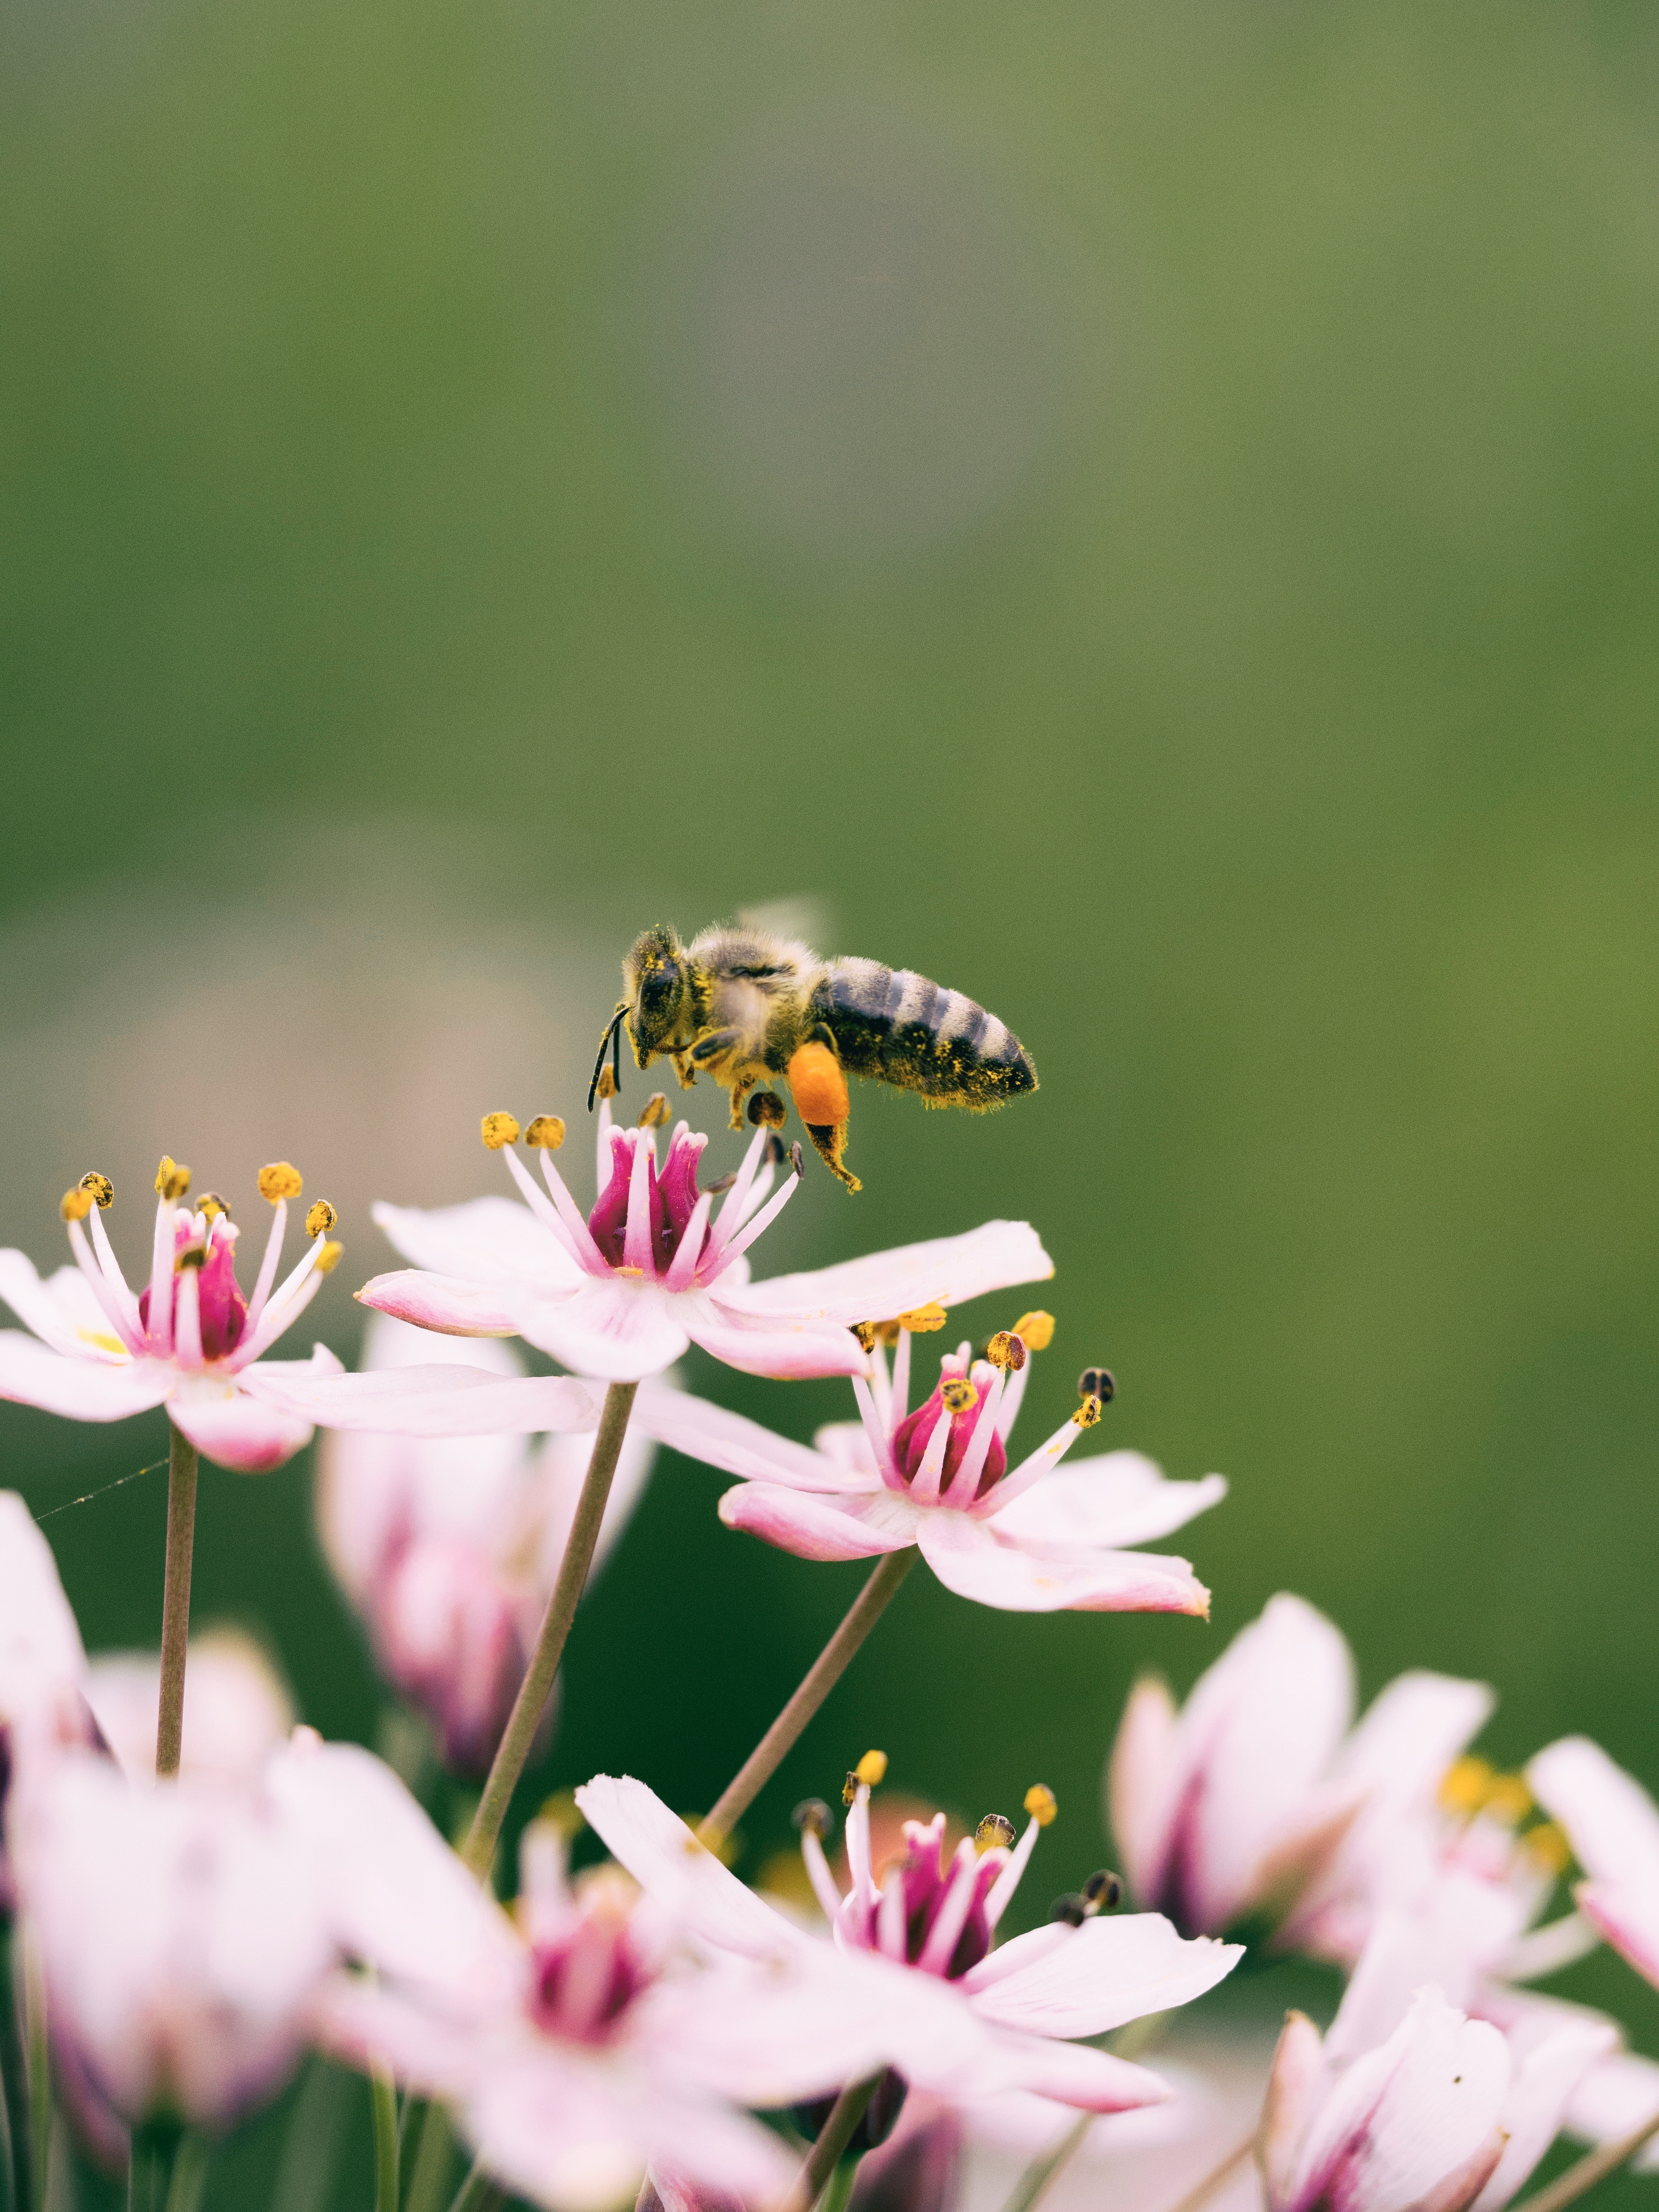 How to Choose the Most Helpful Flowers for Your Pollinator Garden